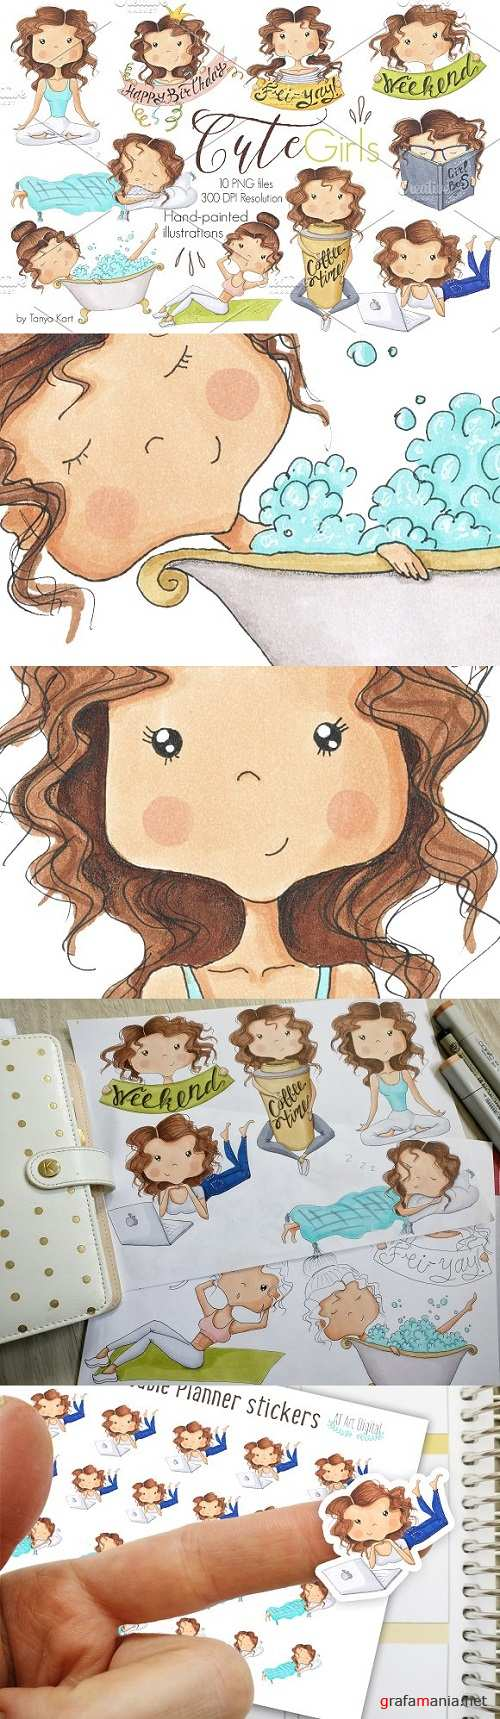 Cute Girls Hand-Painted Clipart - 1567705